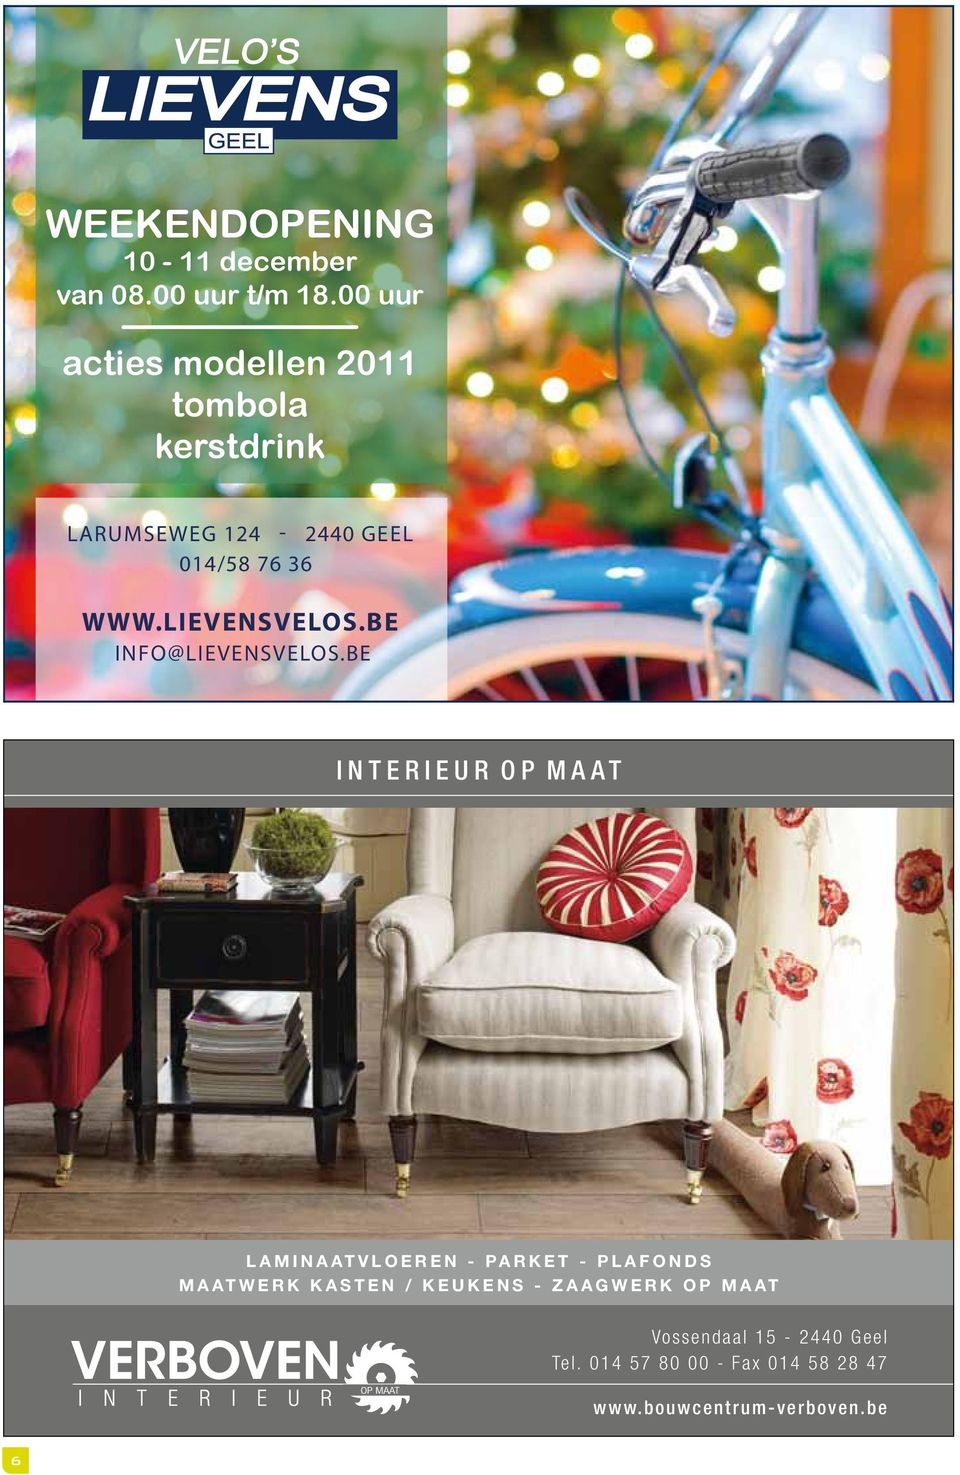 LIEVENSVELOS.BE INFO@LIEVENSVELOS.